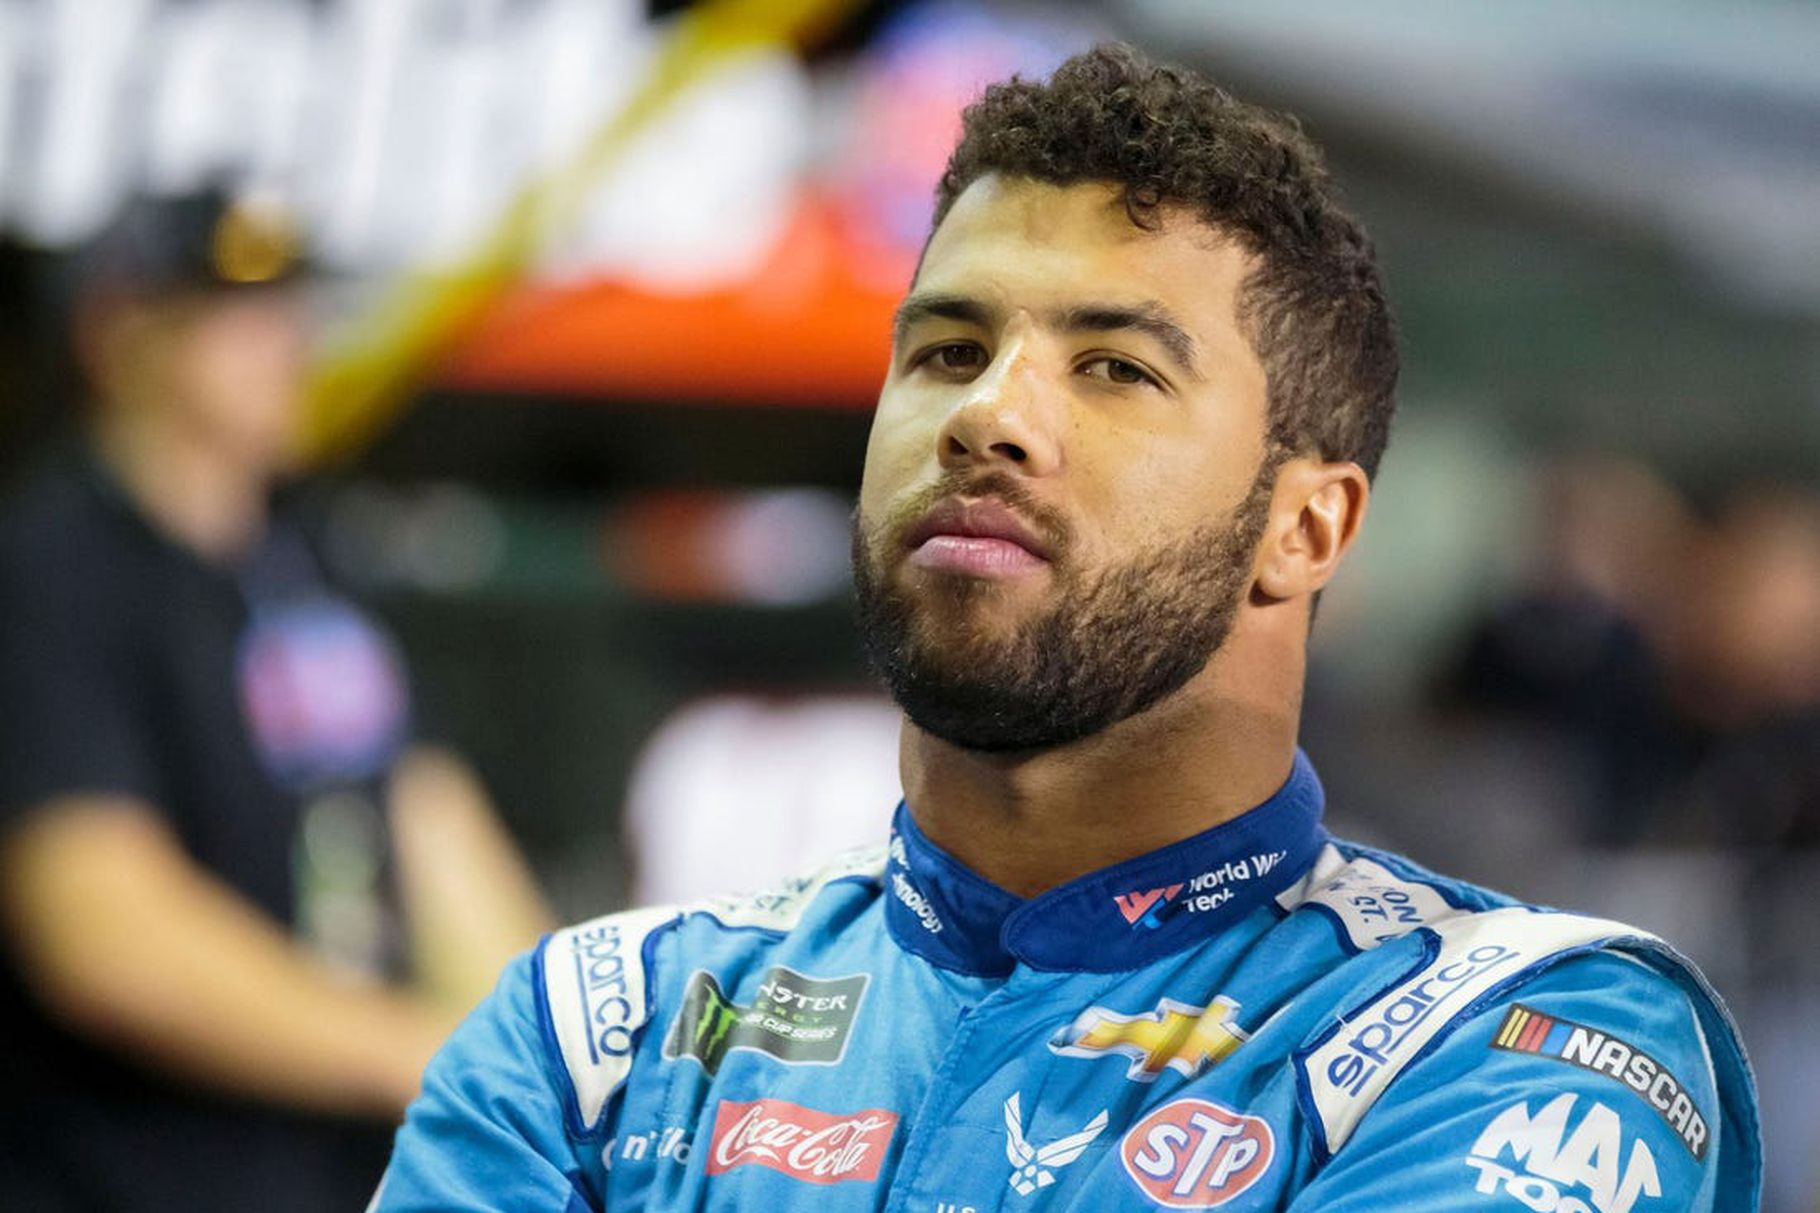 #WhatMatters featuring Bubba Wallace